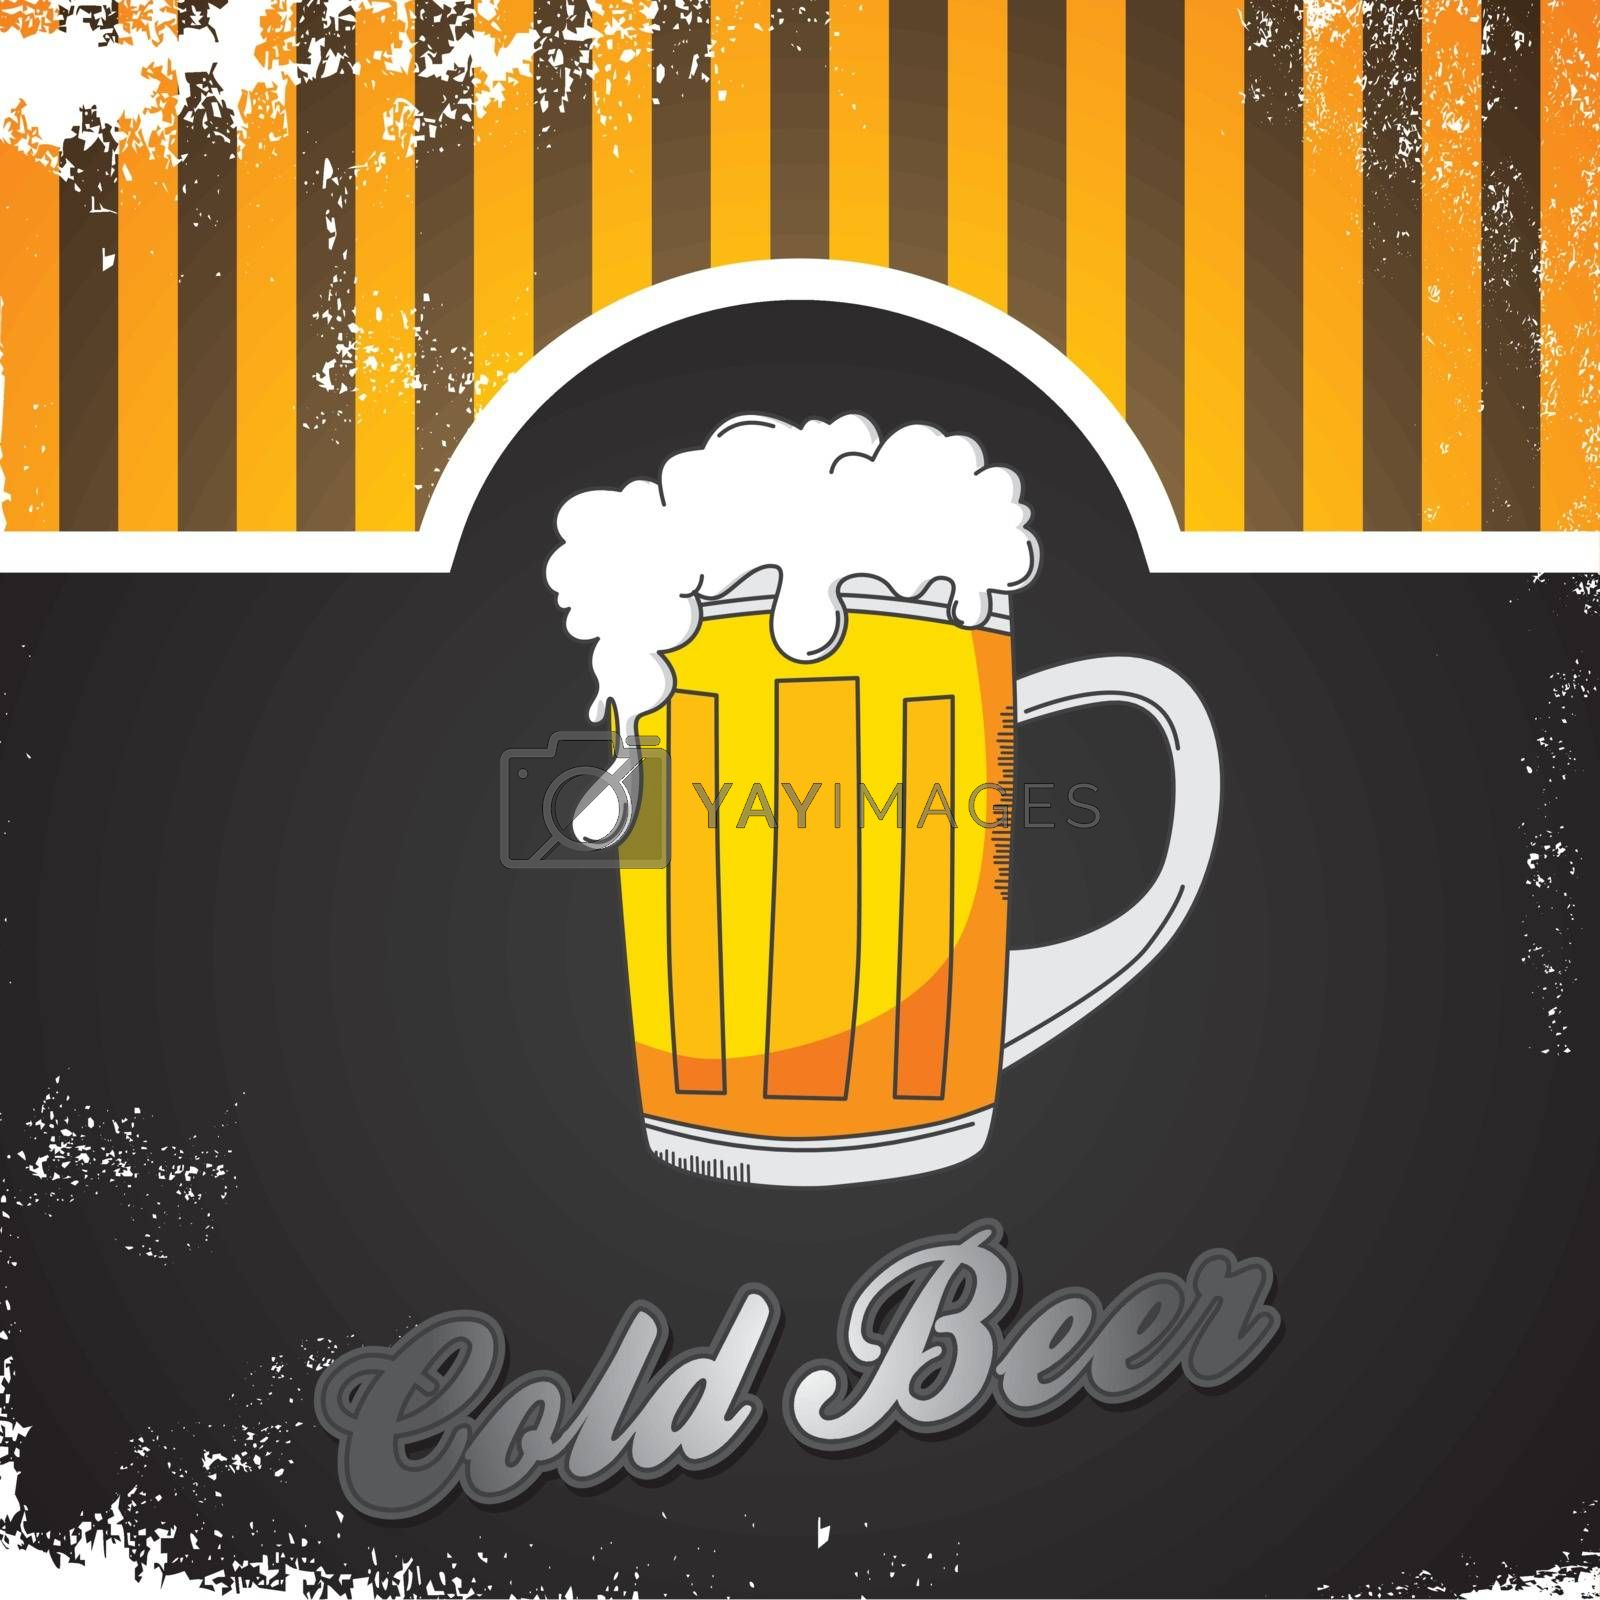 food and drink theme vector graphic art design illustration